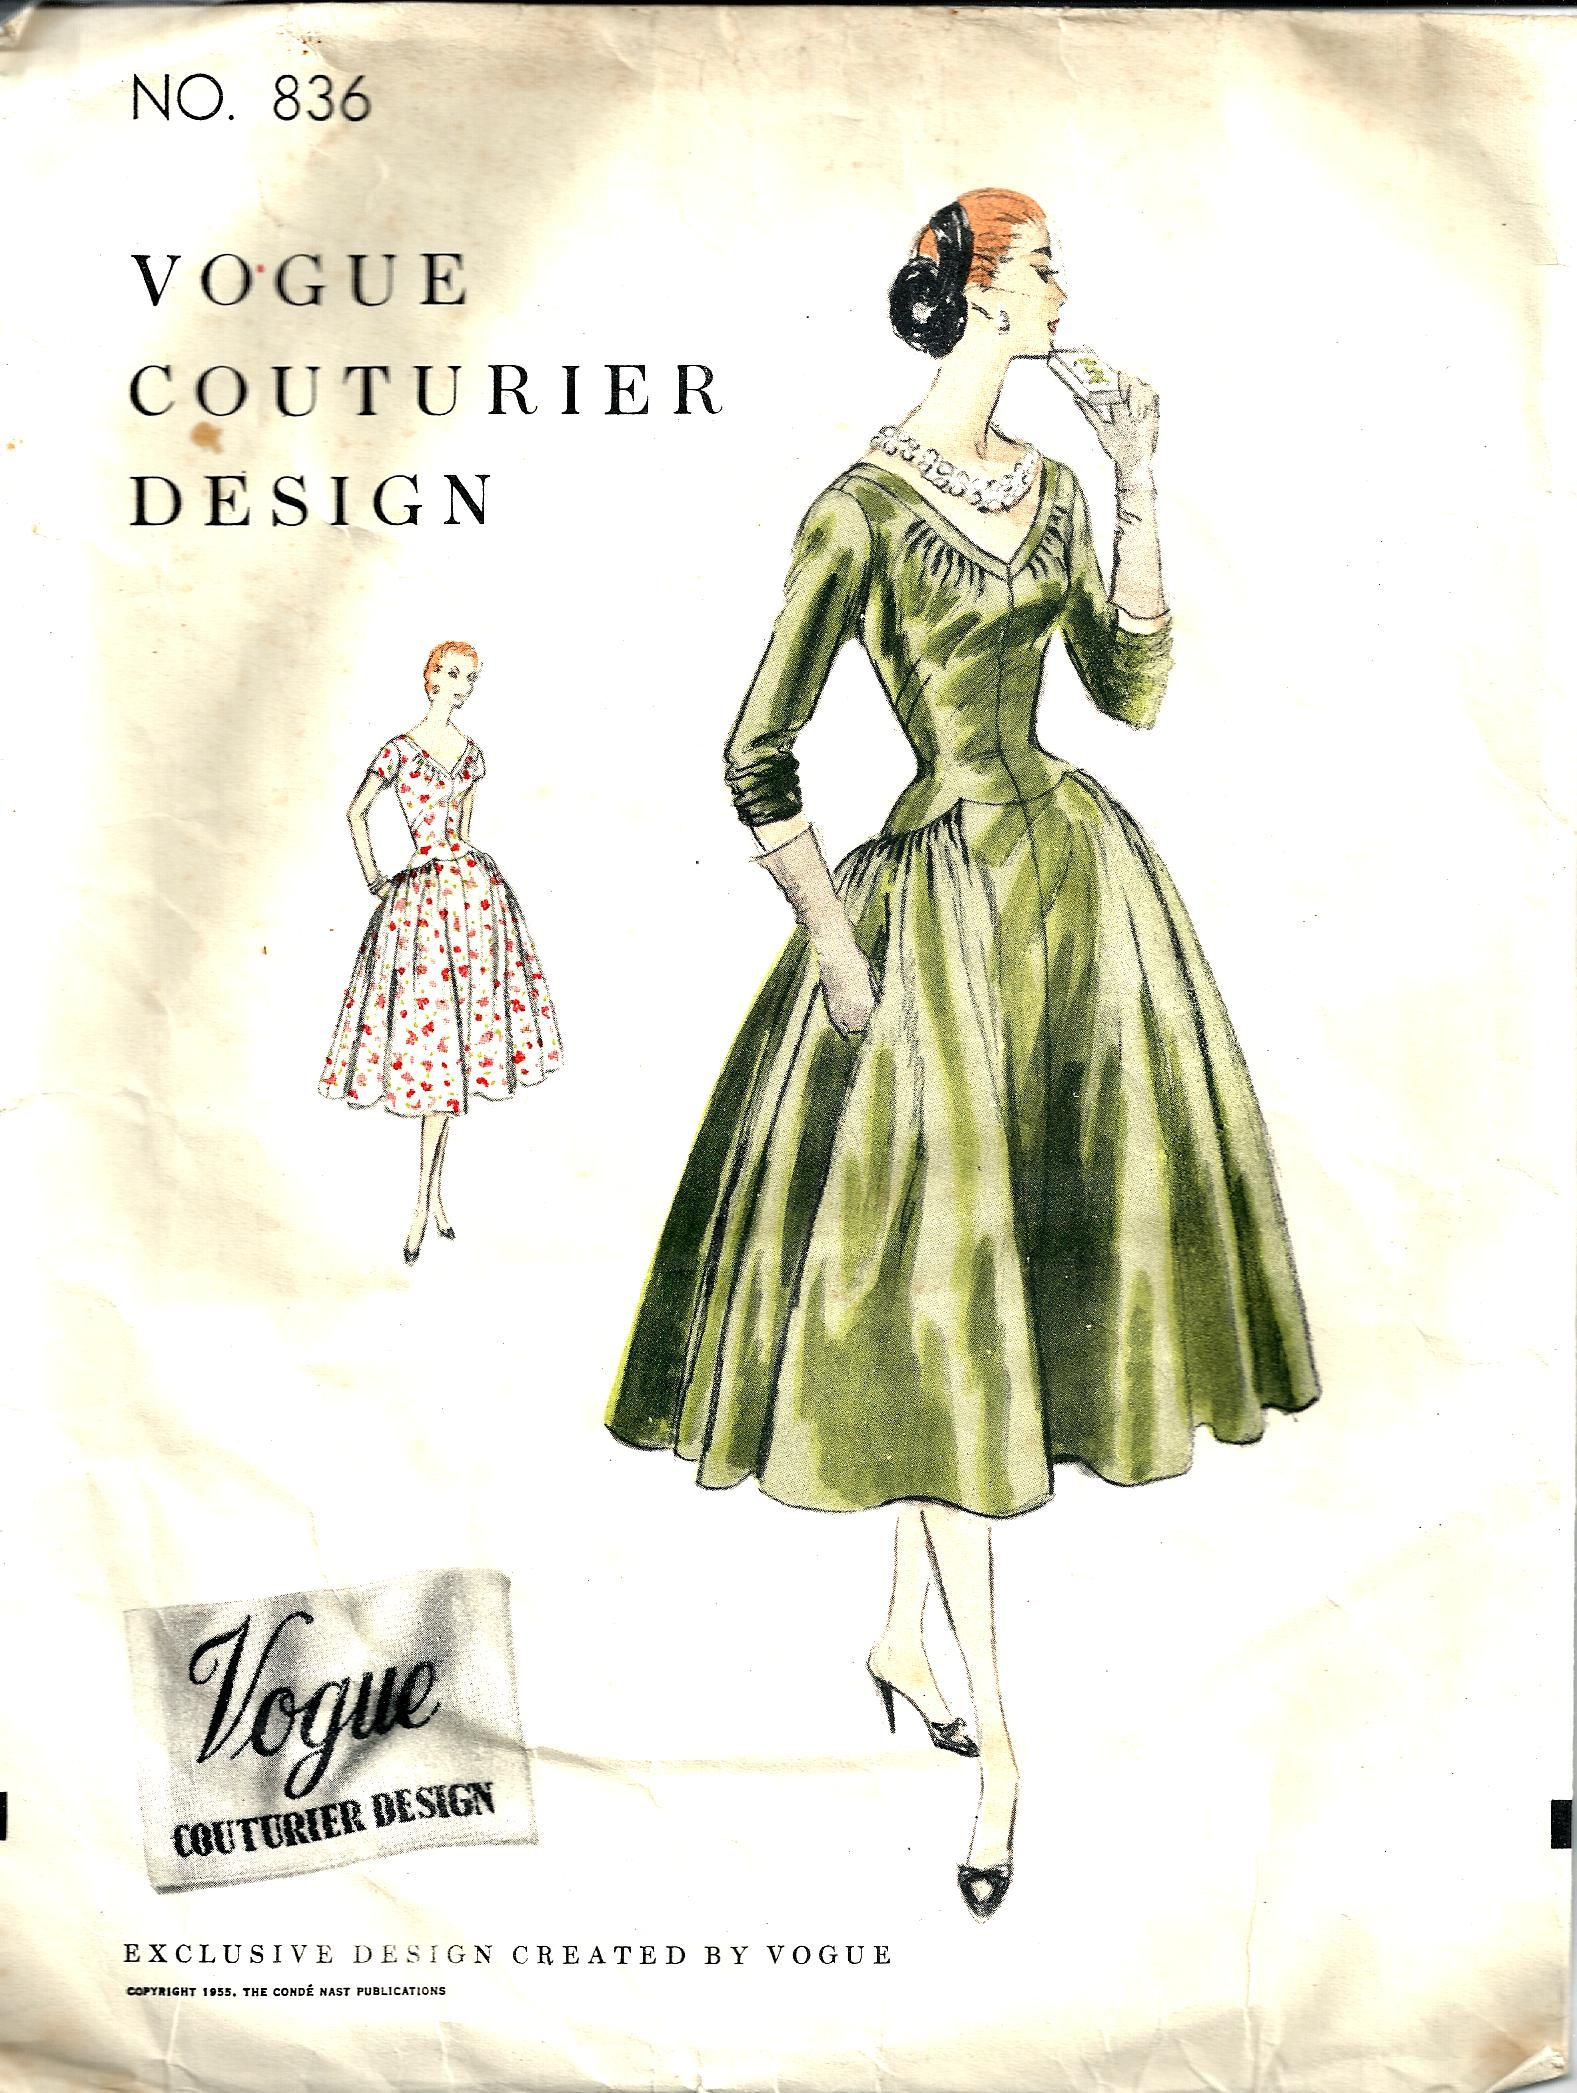 Vintage Sewing Pattern Dress Vogue Couturier 836